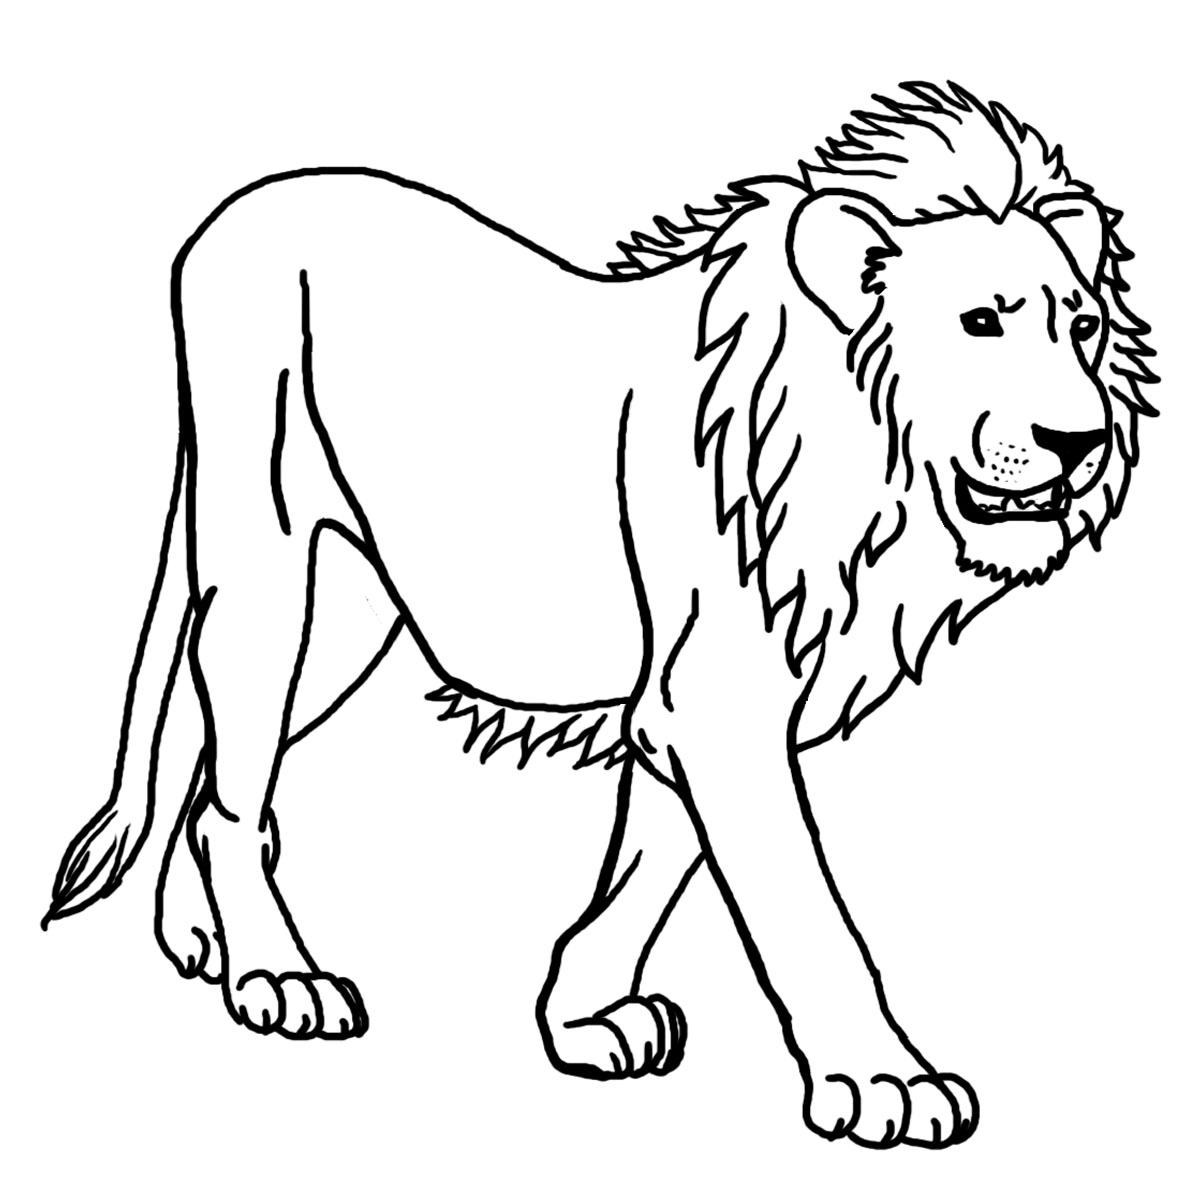 outline of a lion - Boat.jeremyeaton.co